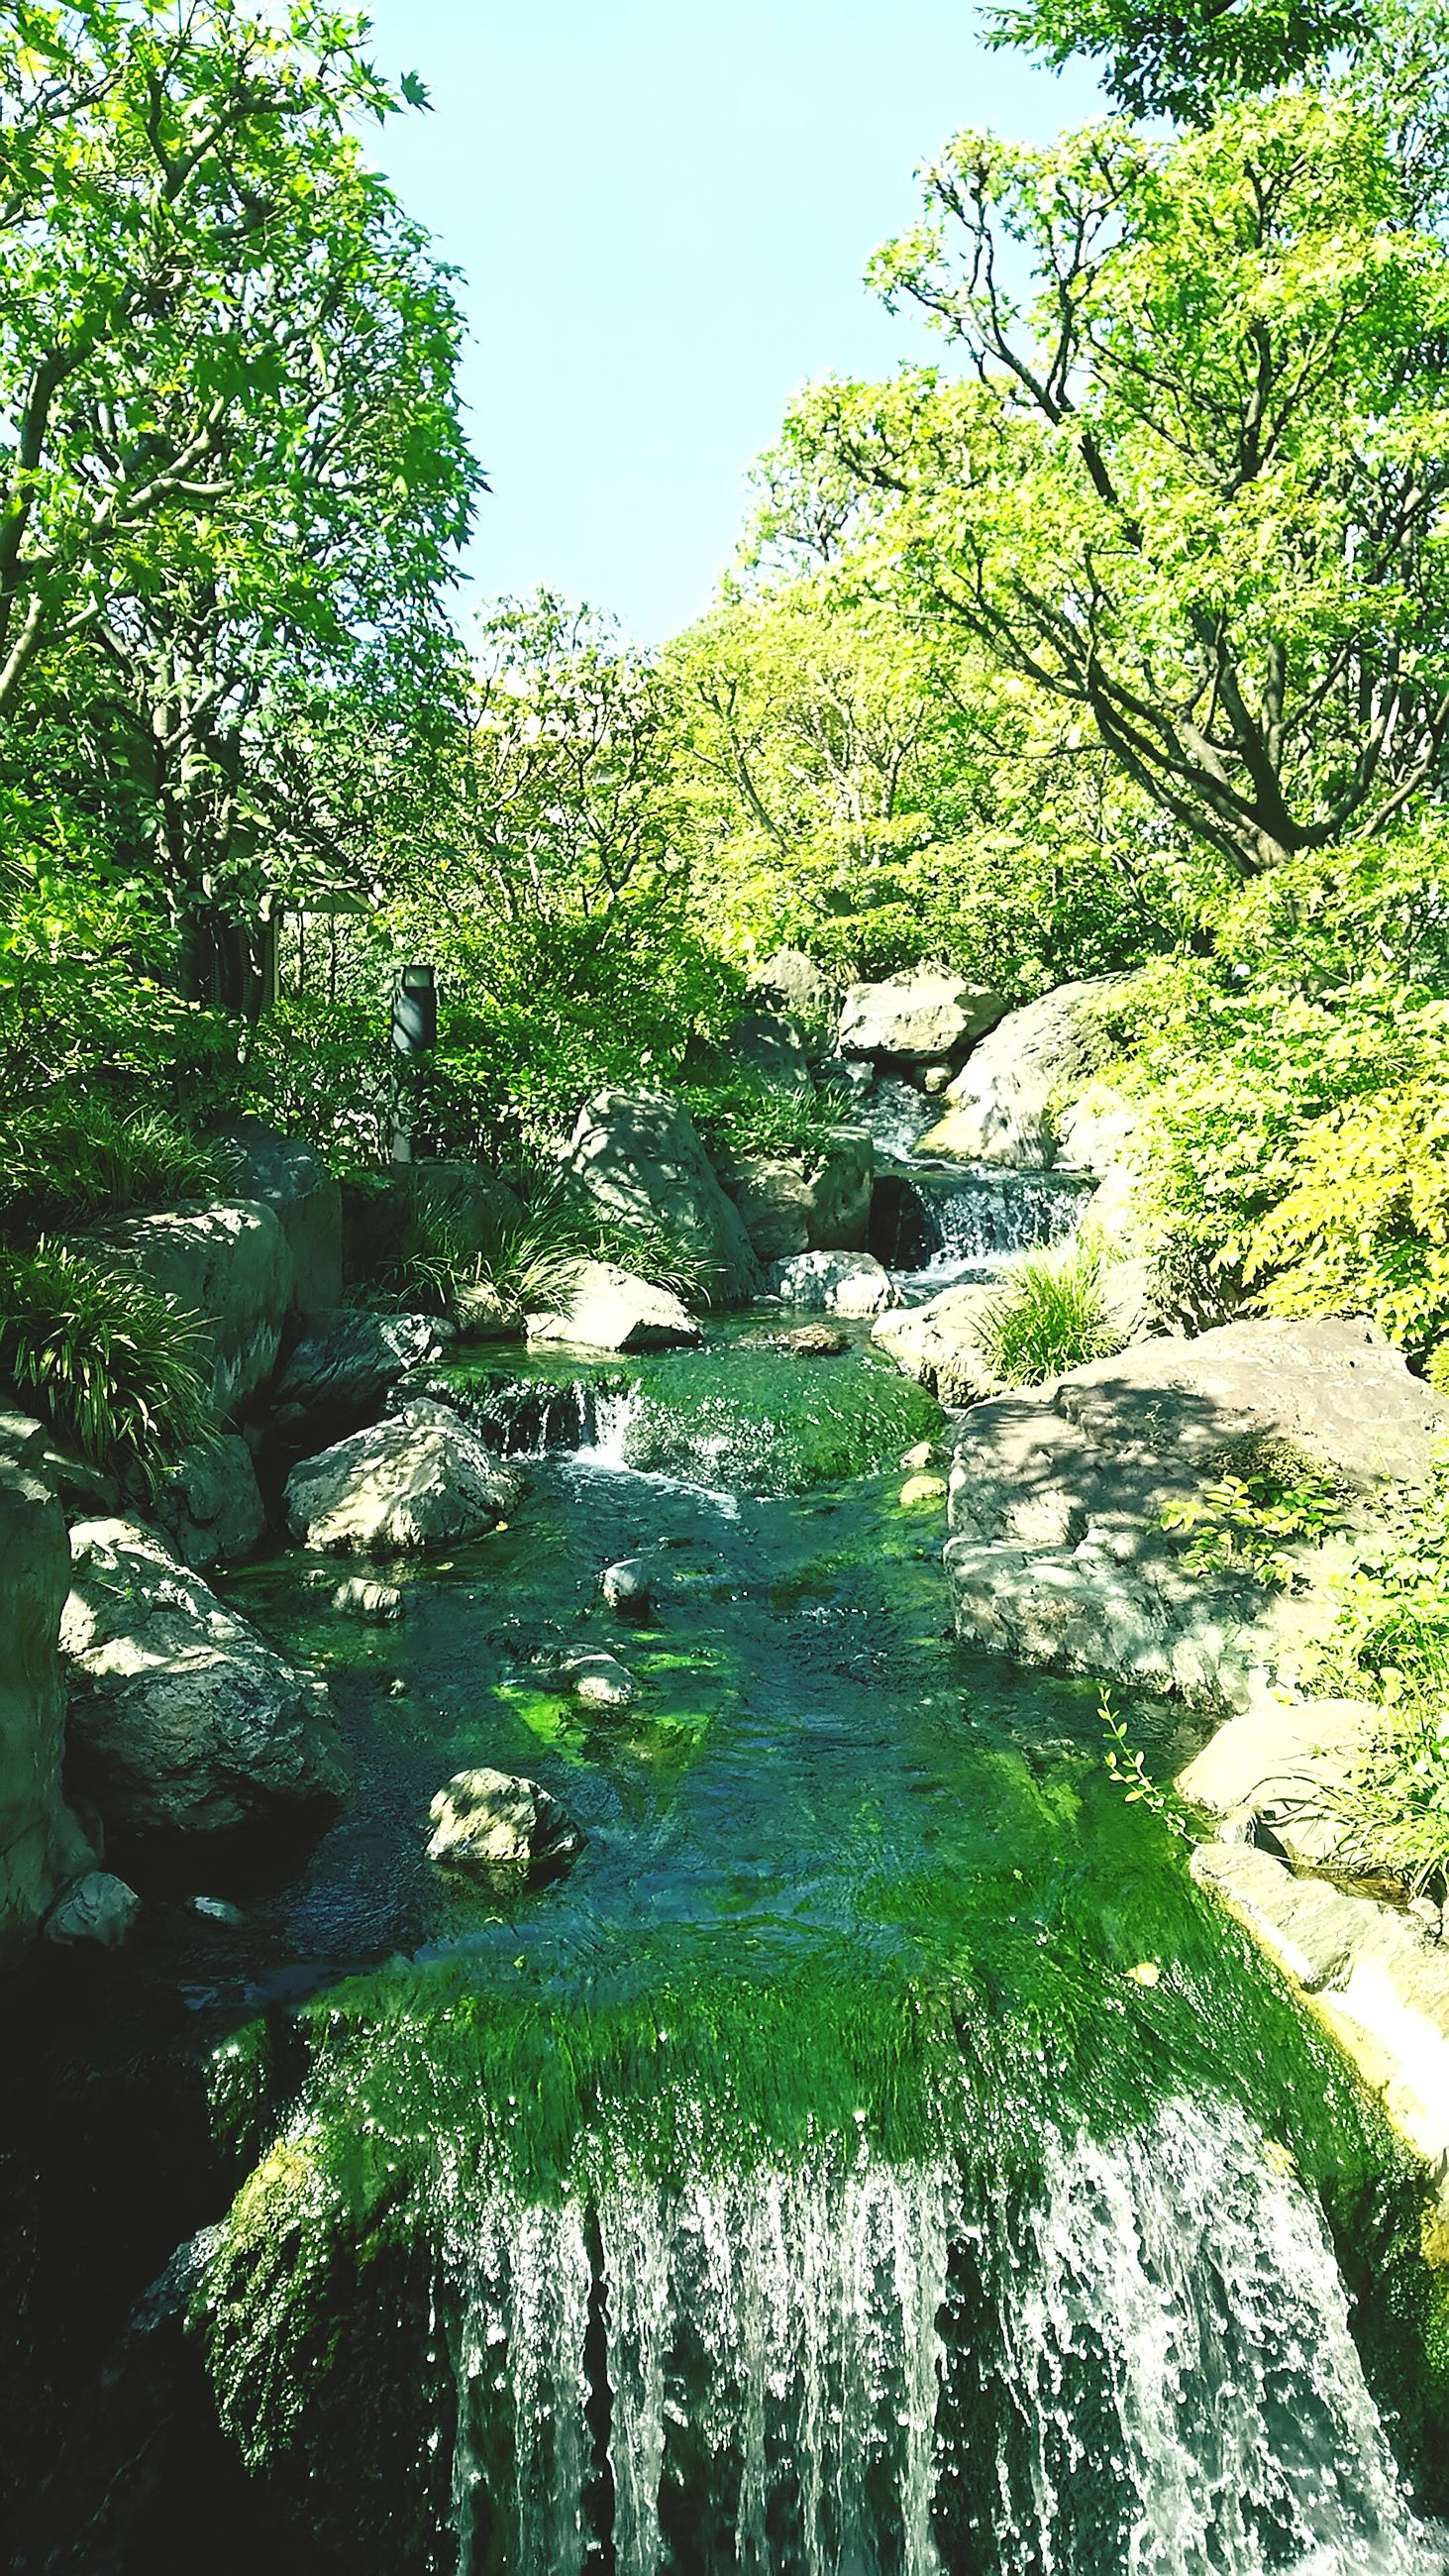 water, tree, tranquility, beauty in nature, growth, nature, green color, tranquil scene, scenics, rock - object, plant, reflection, forest, day, clear sky, idyllic, river, stream, sunlight, outdoors